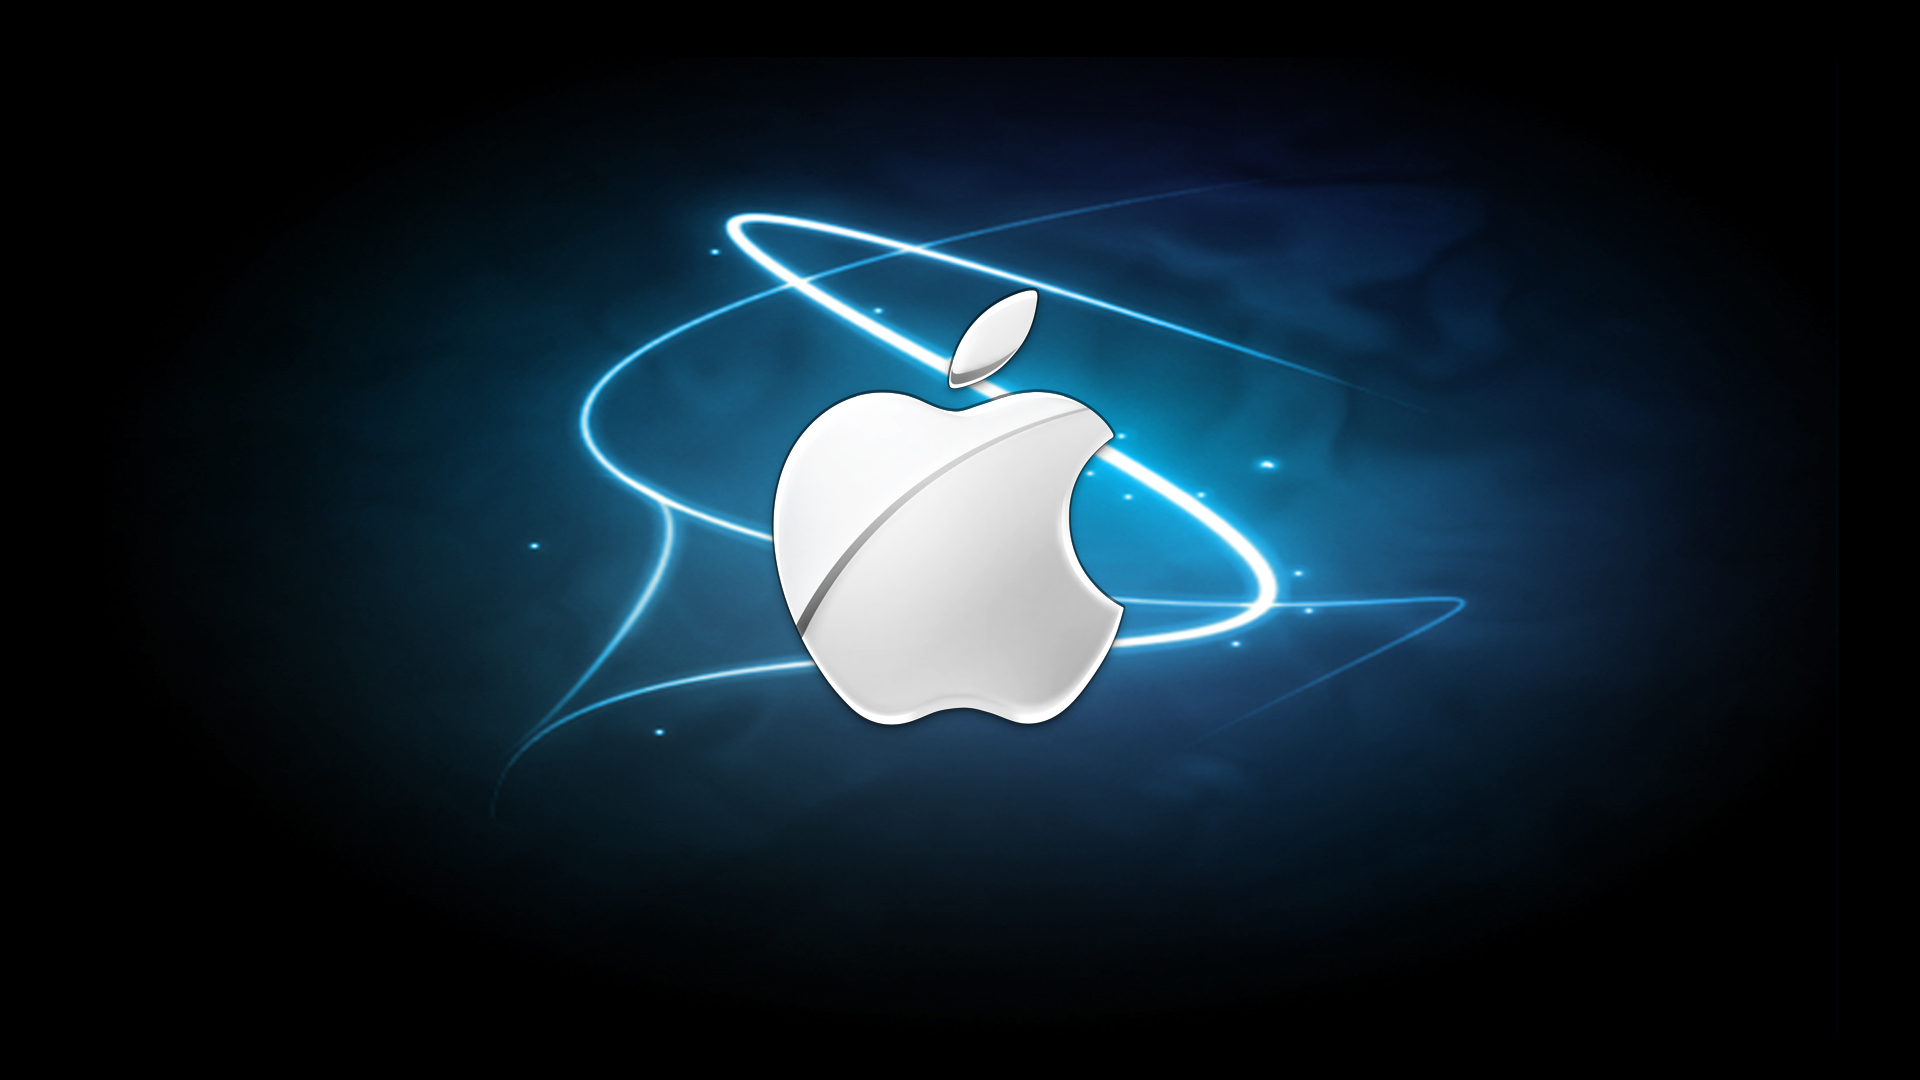 cool apple logos hd. apple logo wallpapers hd a31 cool logos hd i